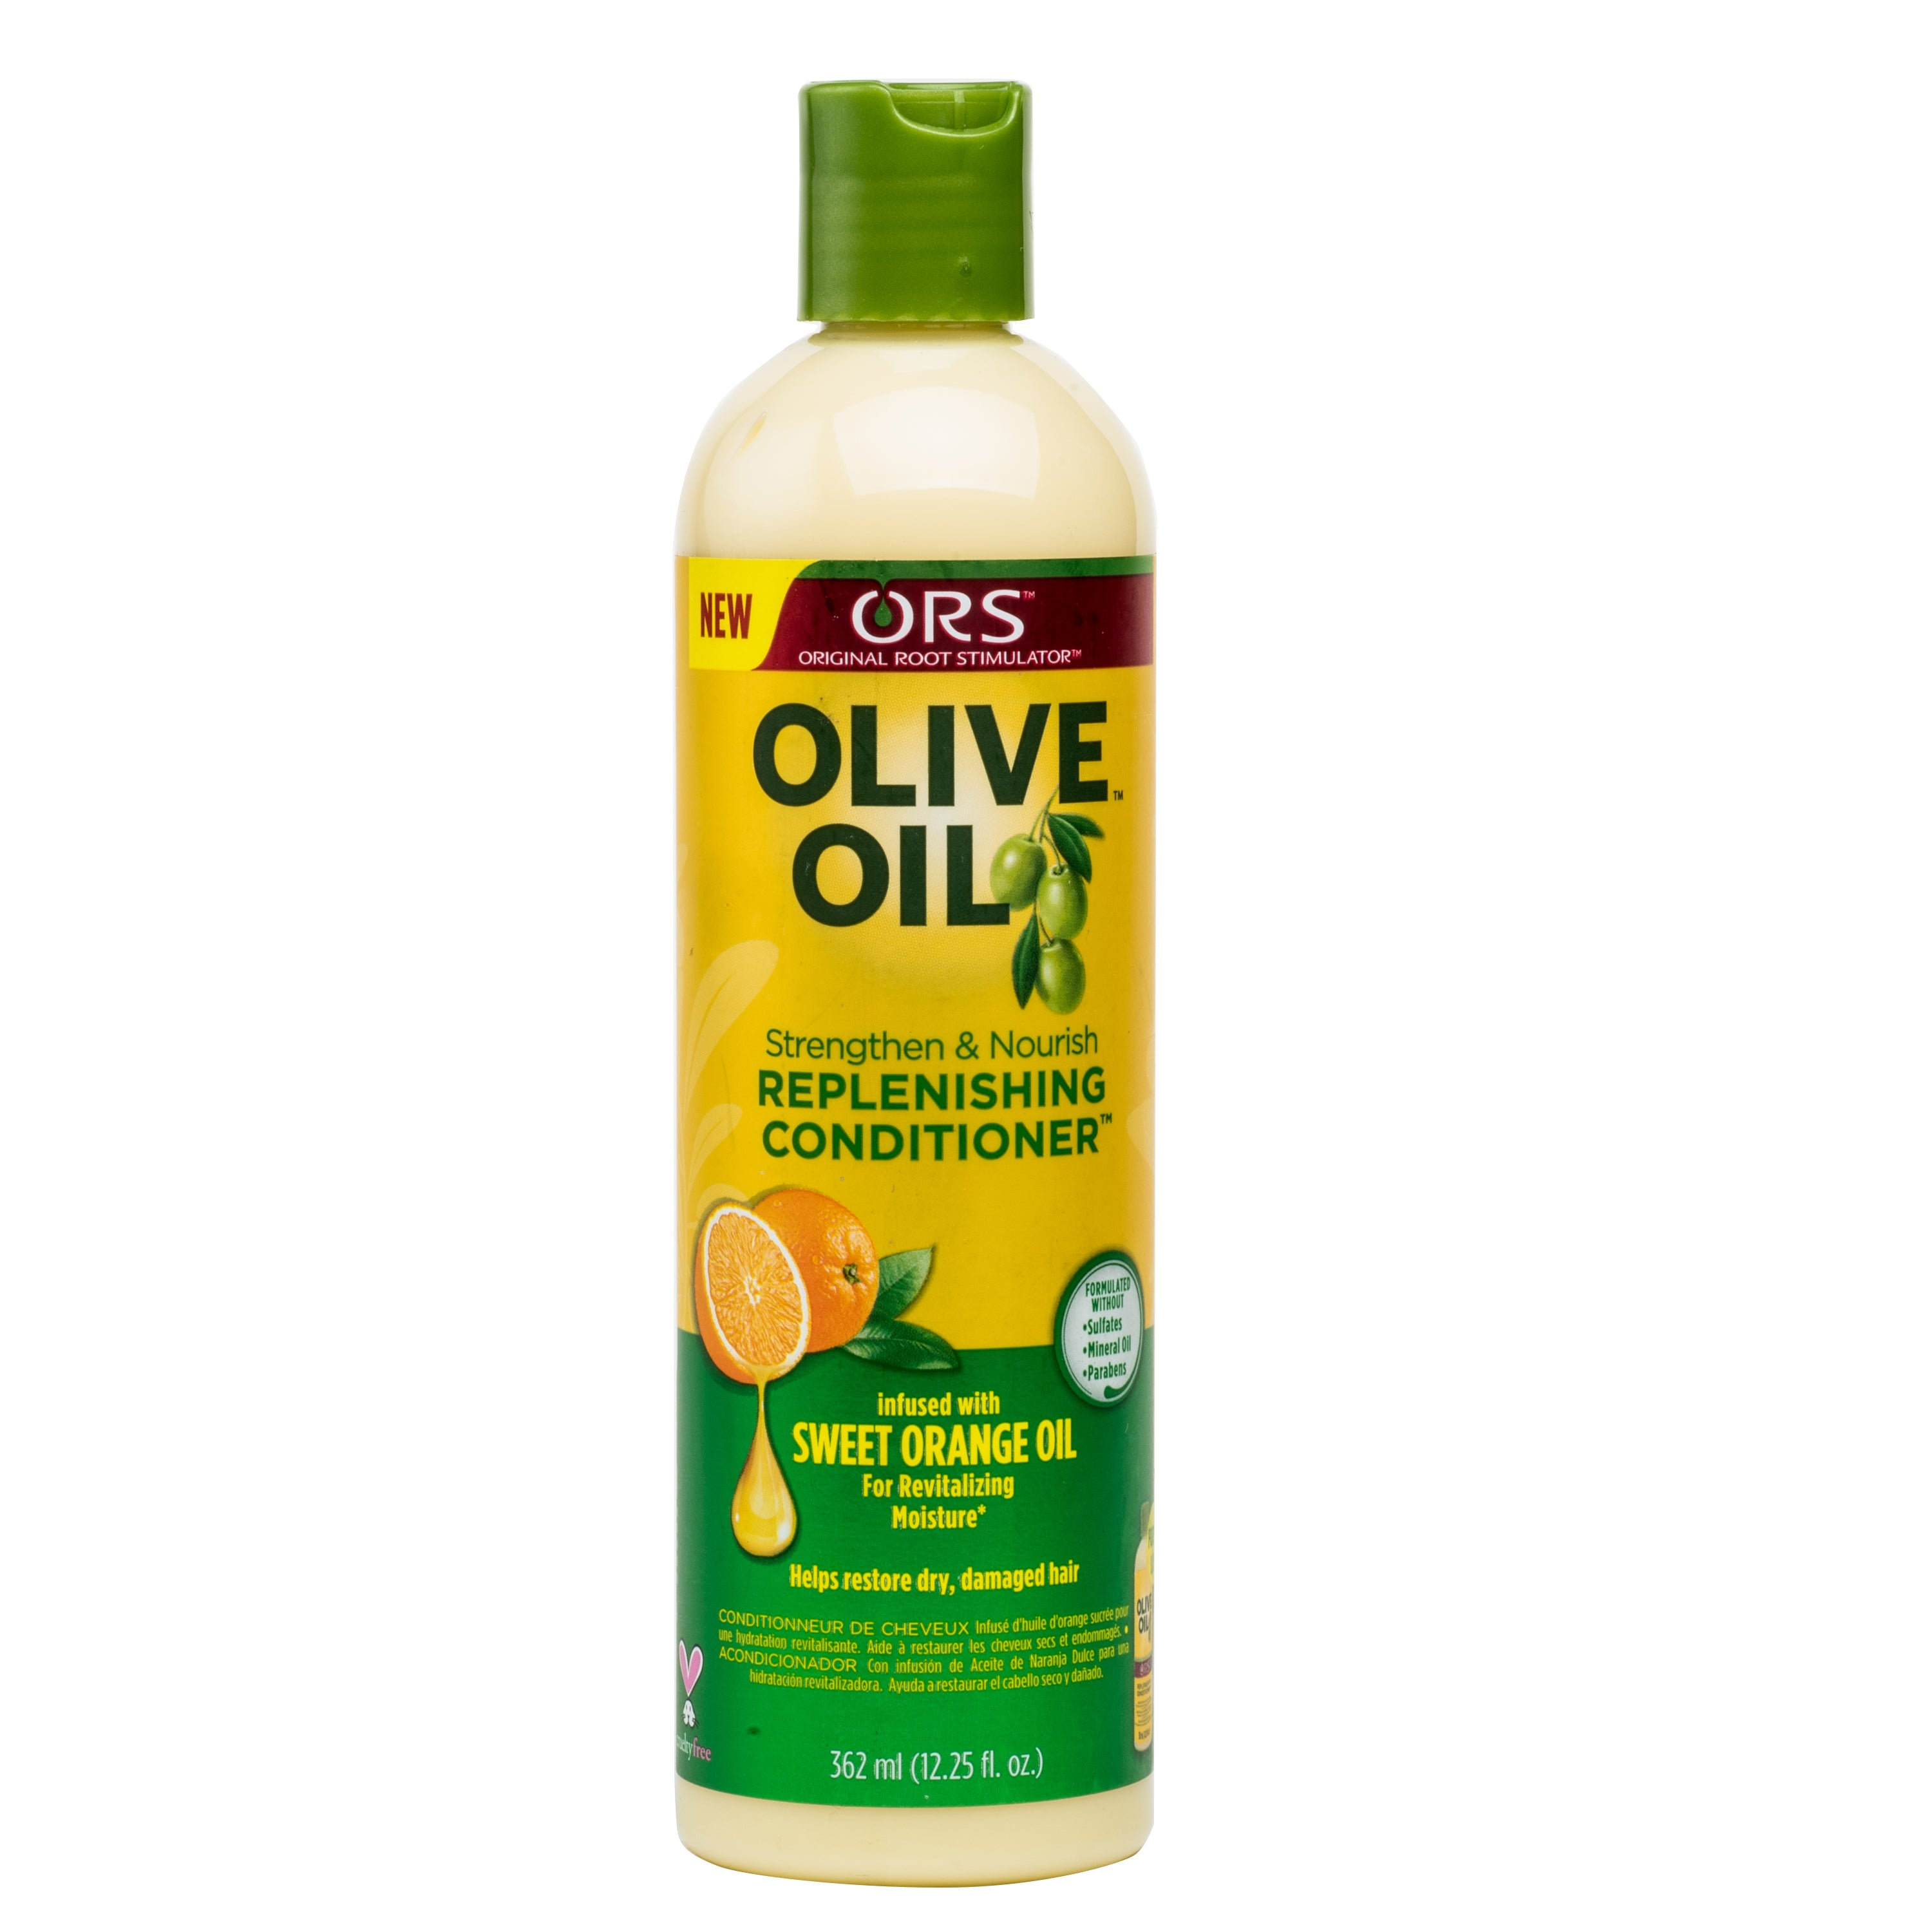 ORS- Olive Oil Strengthen & Nourish Replenishing Conditioner 12.25oz